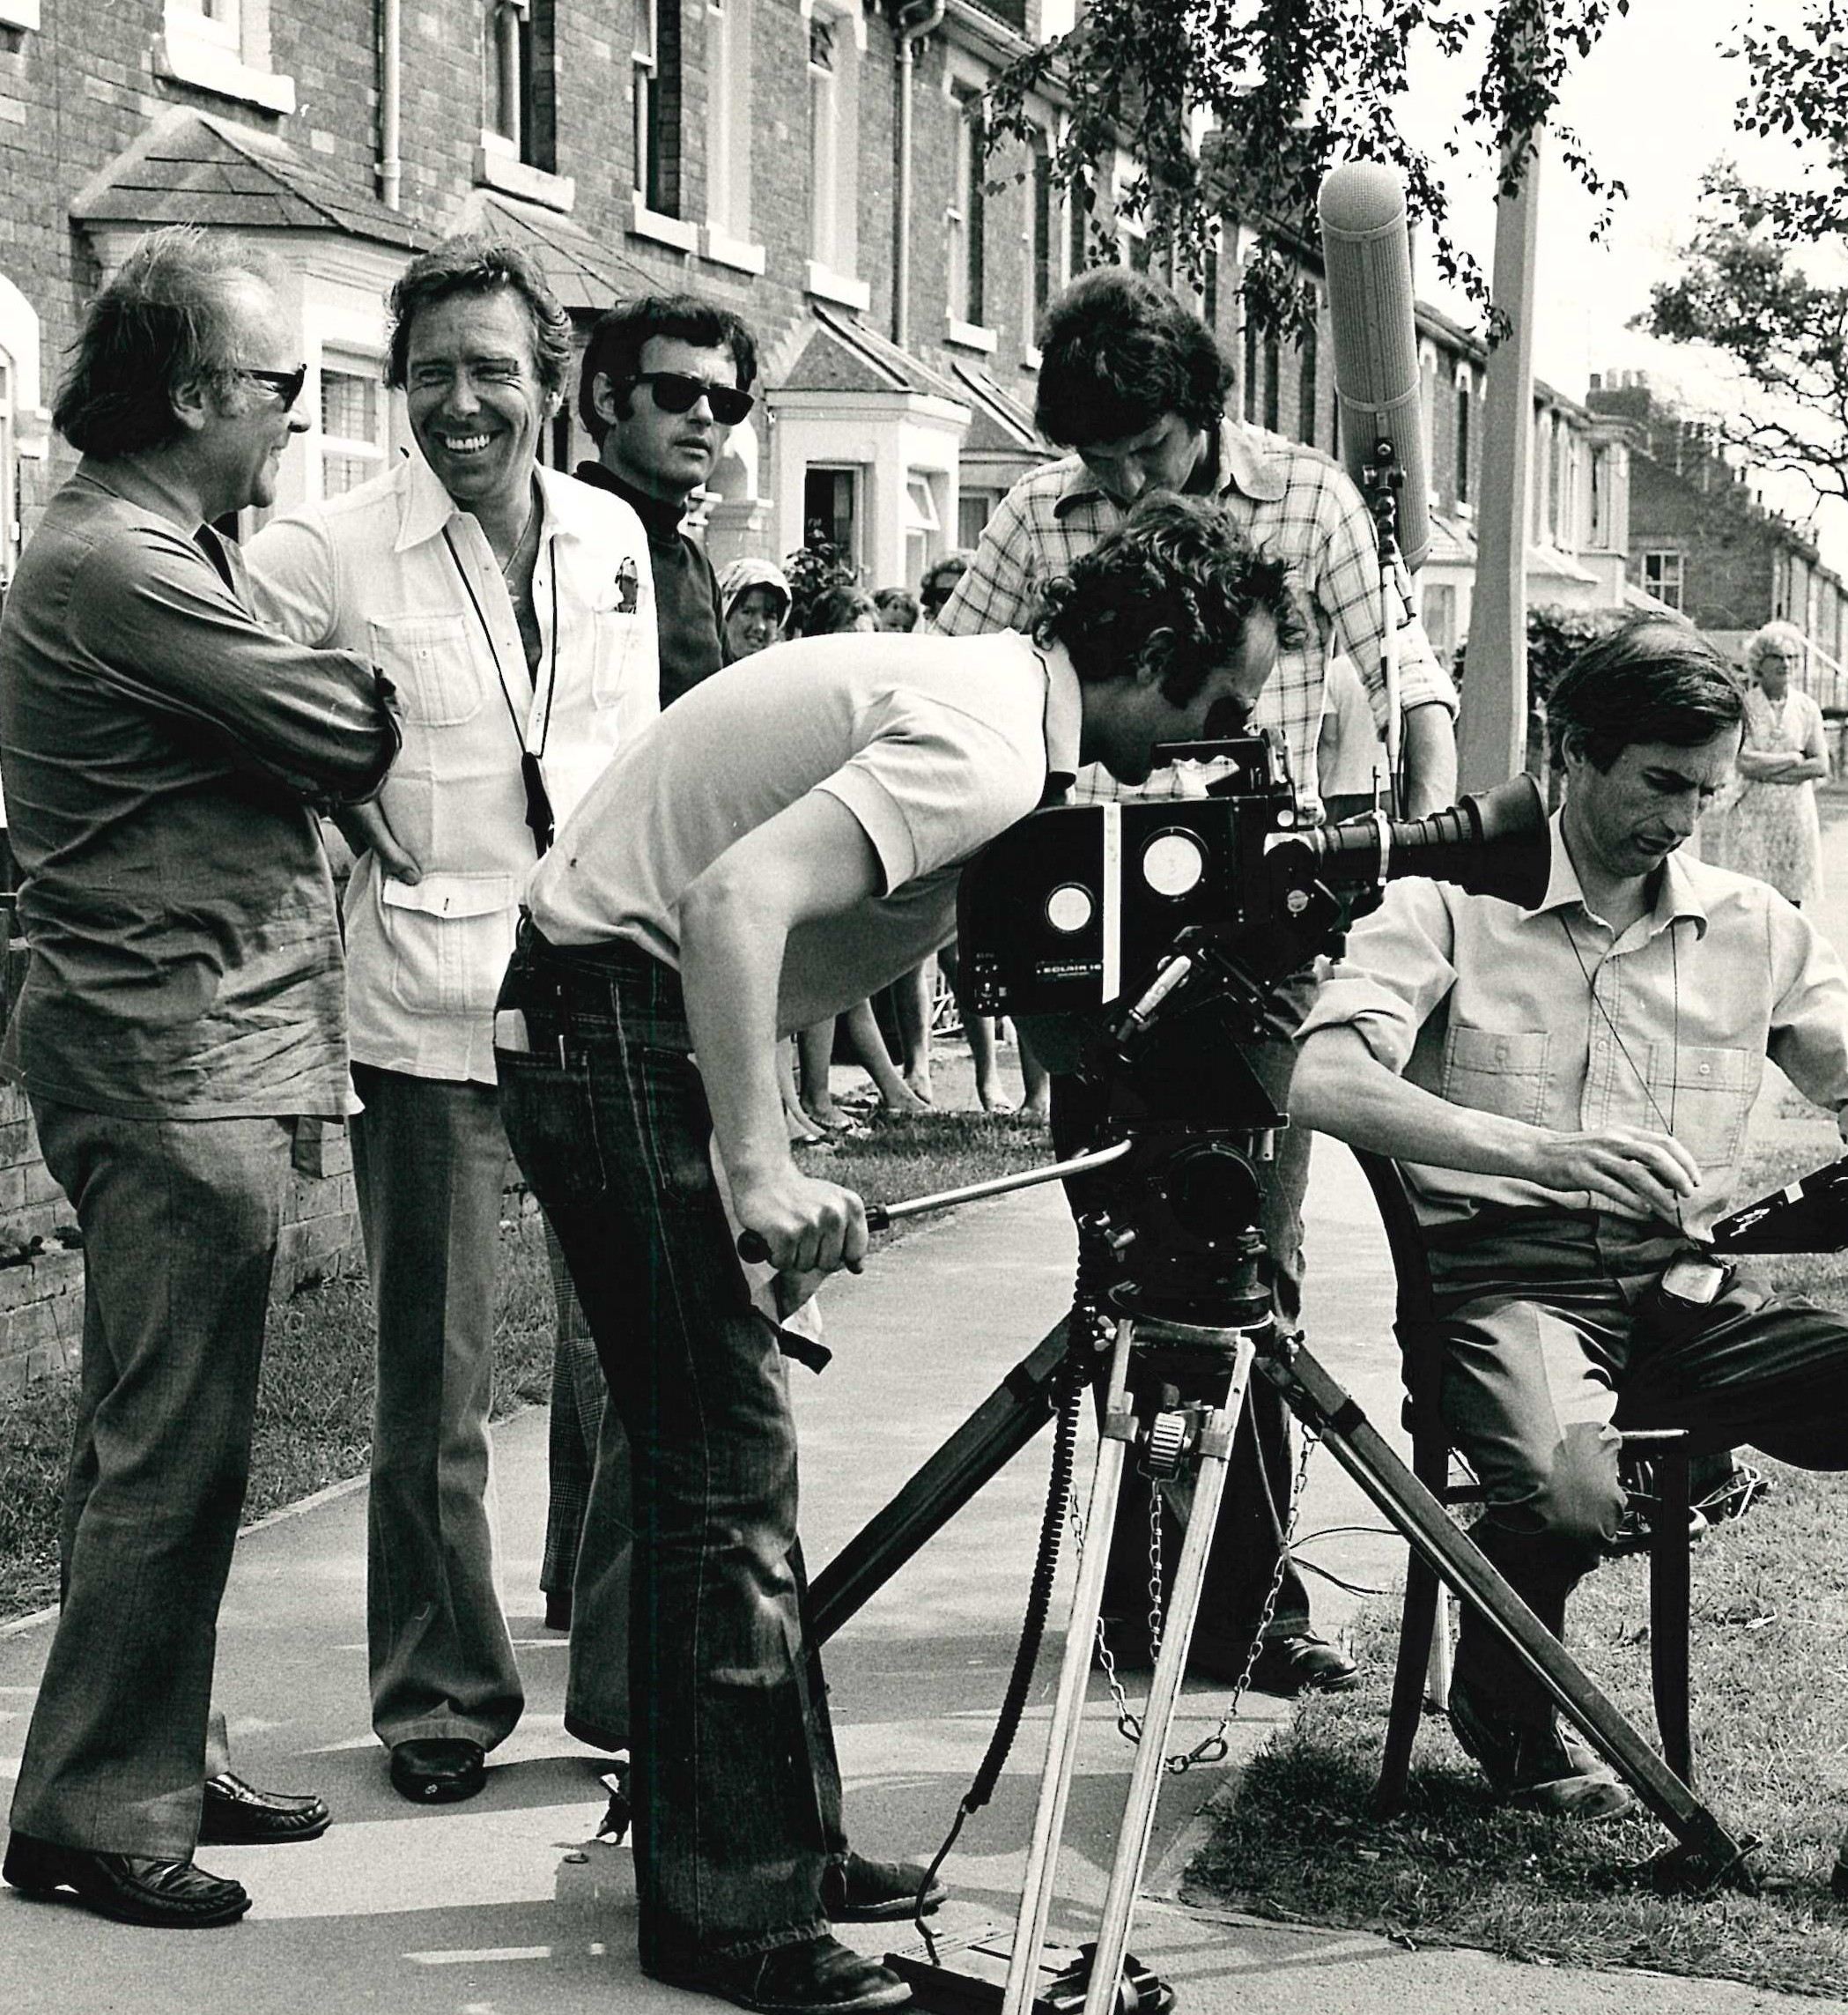 Lord Snowdon, second from left, was spotted in Swindon making a TV documentary on this day in 1973